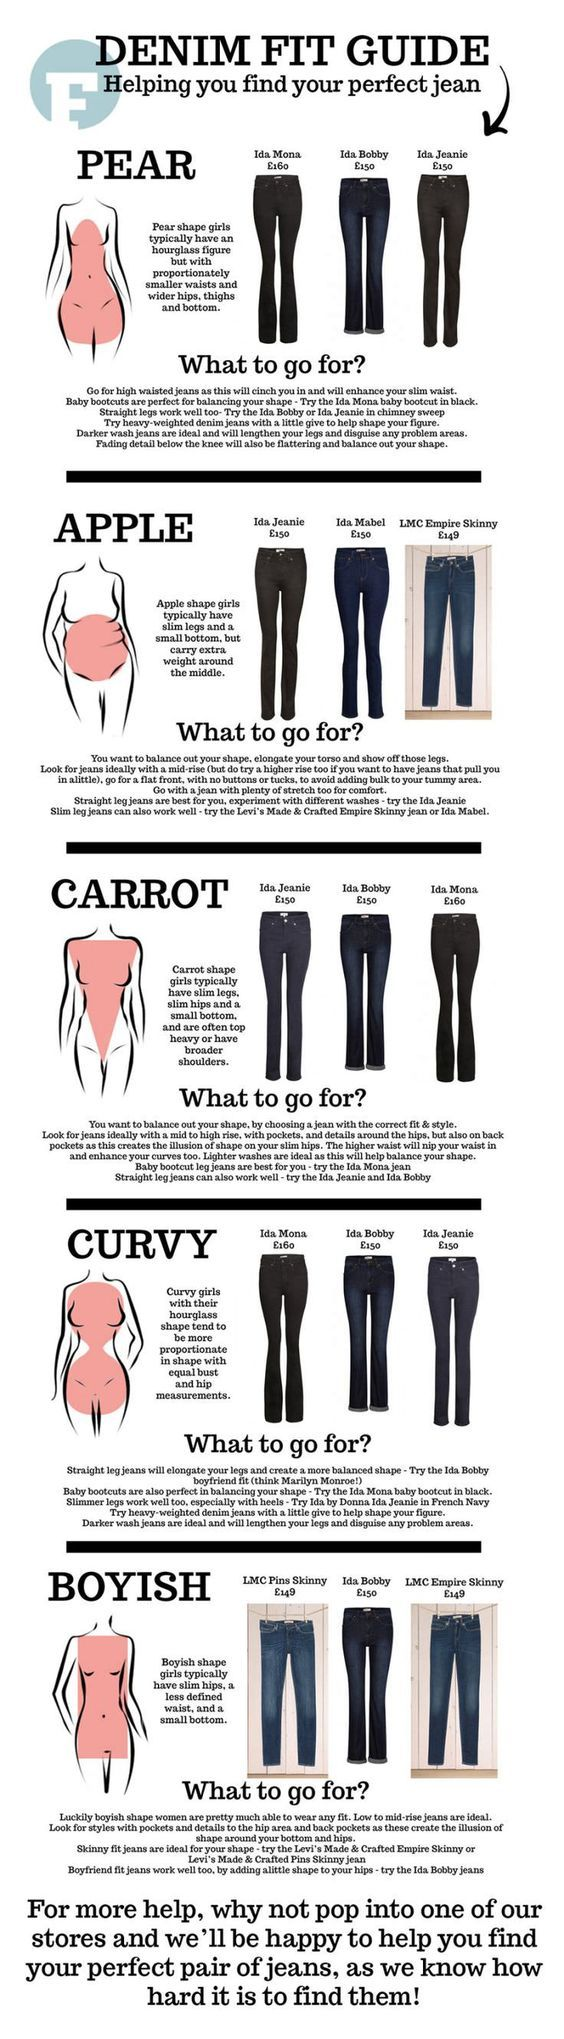 Fit Guide to Body Shape and other very useful clothing information from pants skirts tops shirts necklines fabric tights shorts etc.